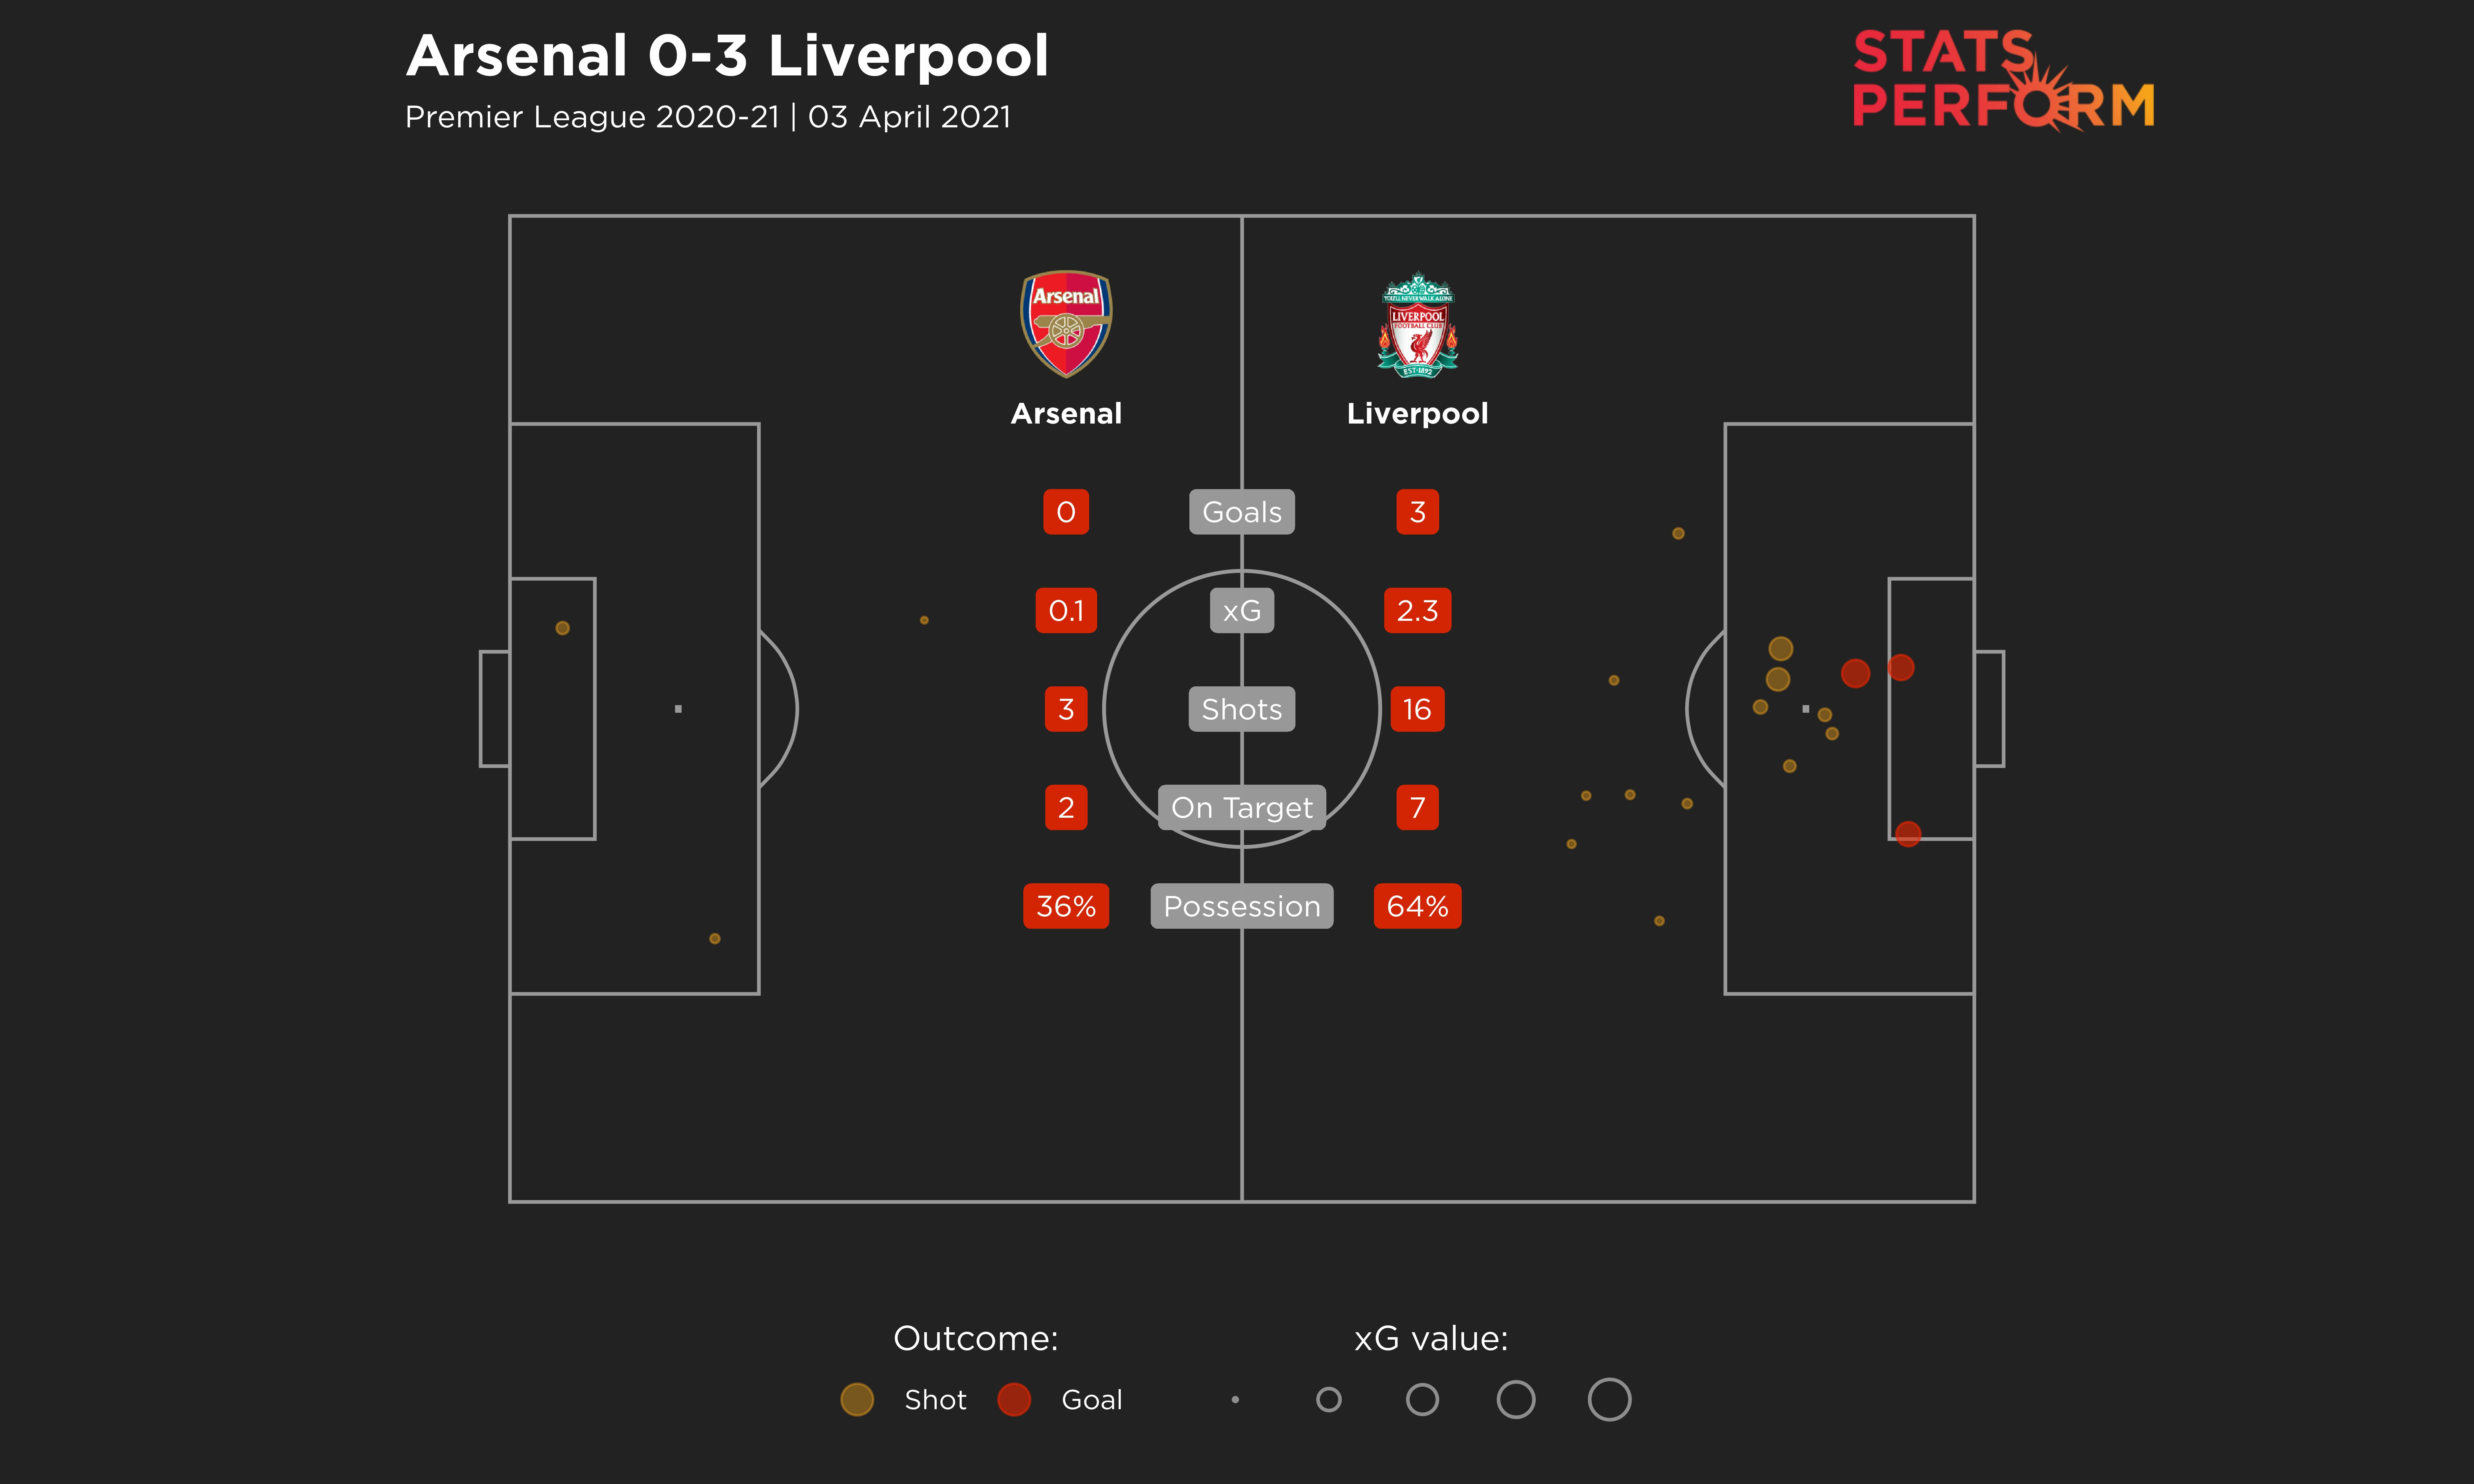 Arsenal's 3-0 defeat to Liverpool